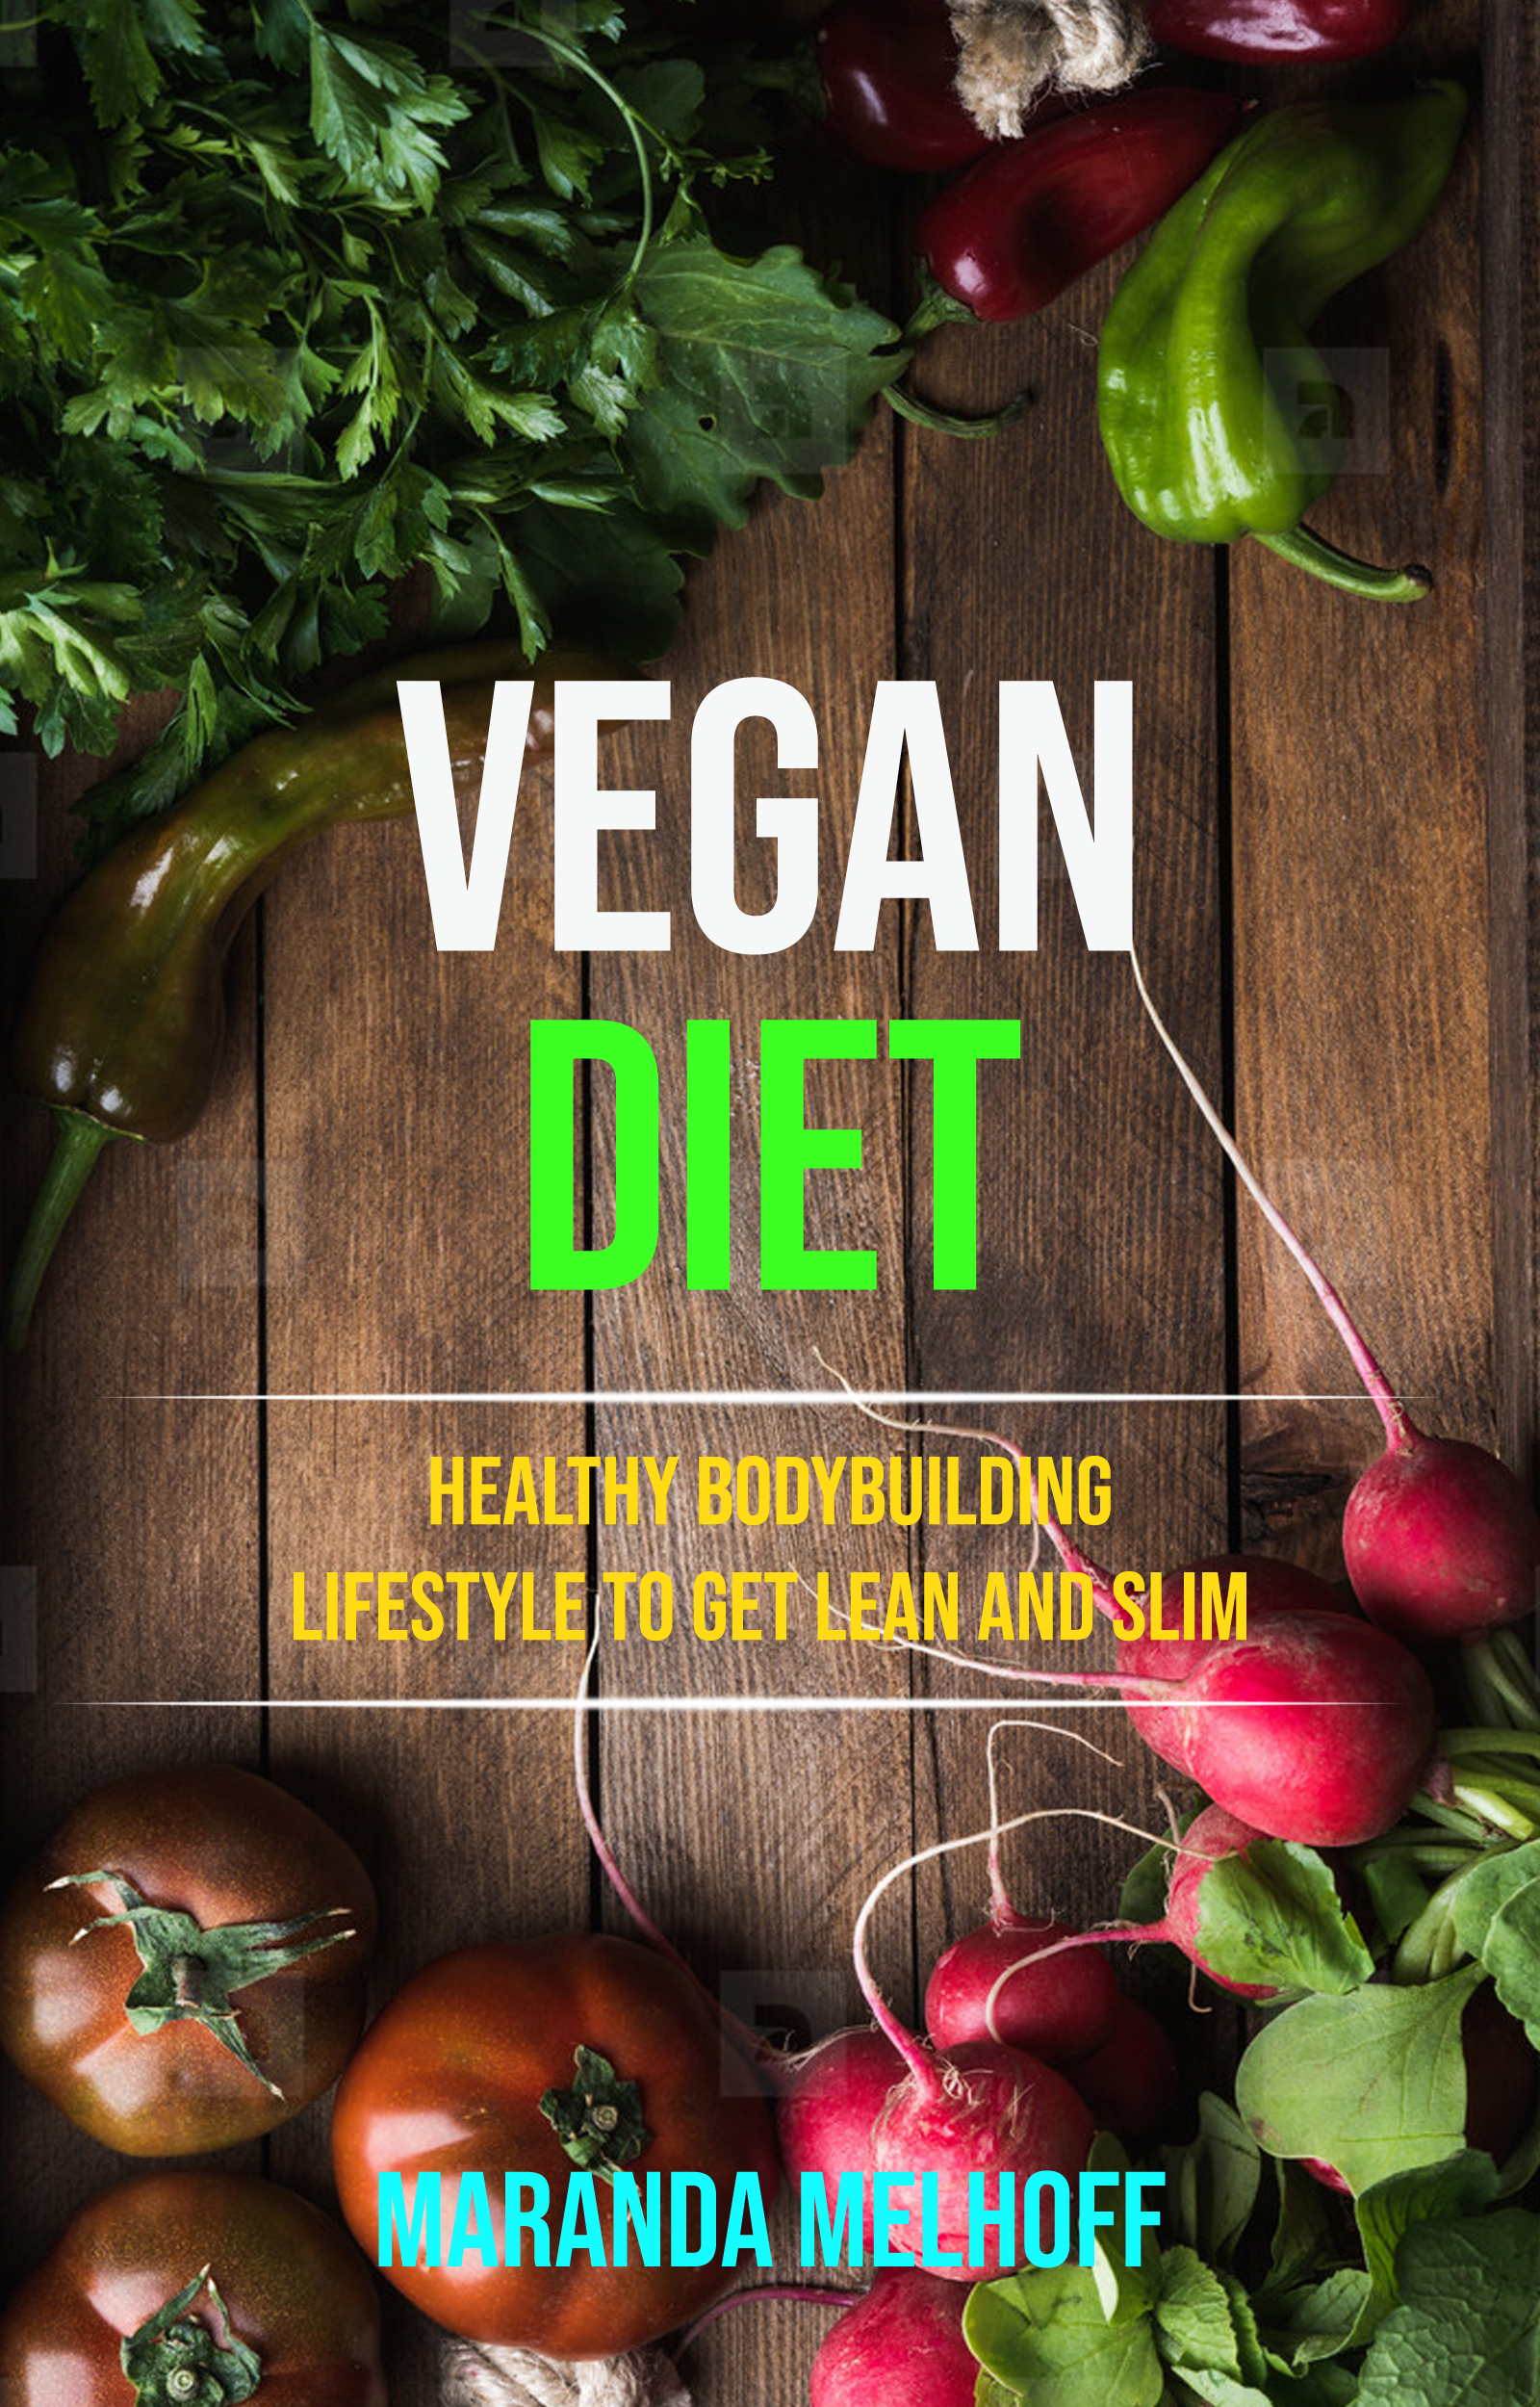 Vegan diet: healthy bodybuilding lifestyle to get lean and slim